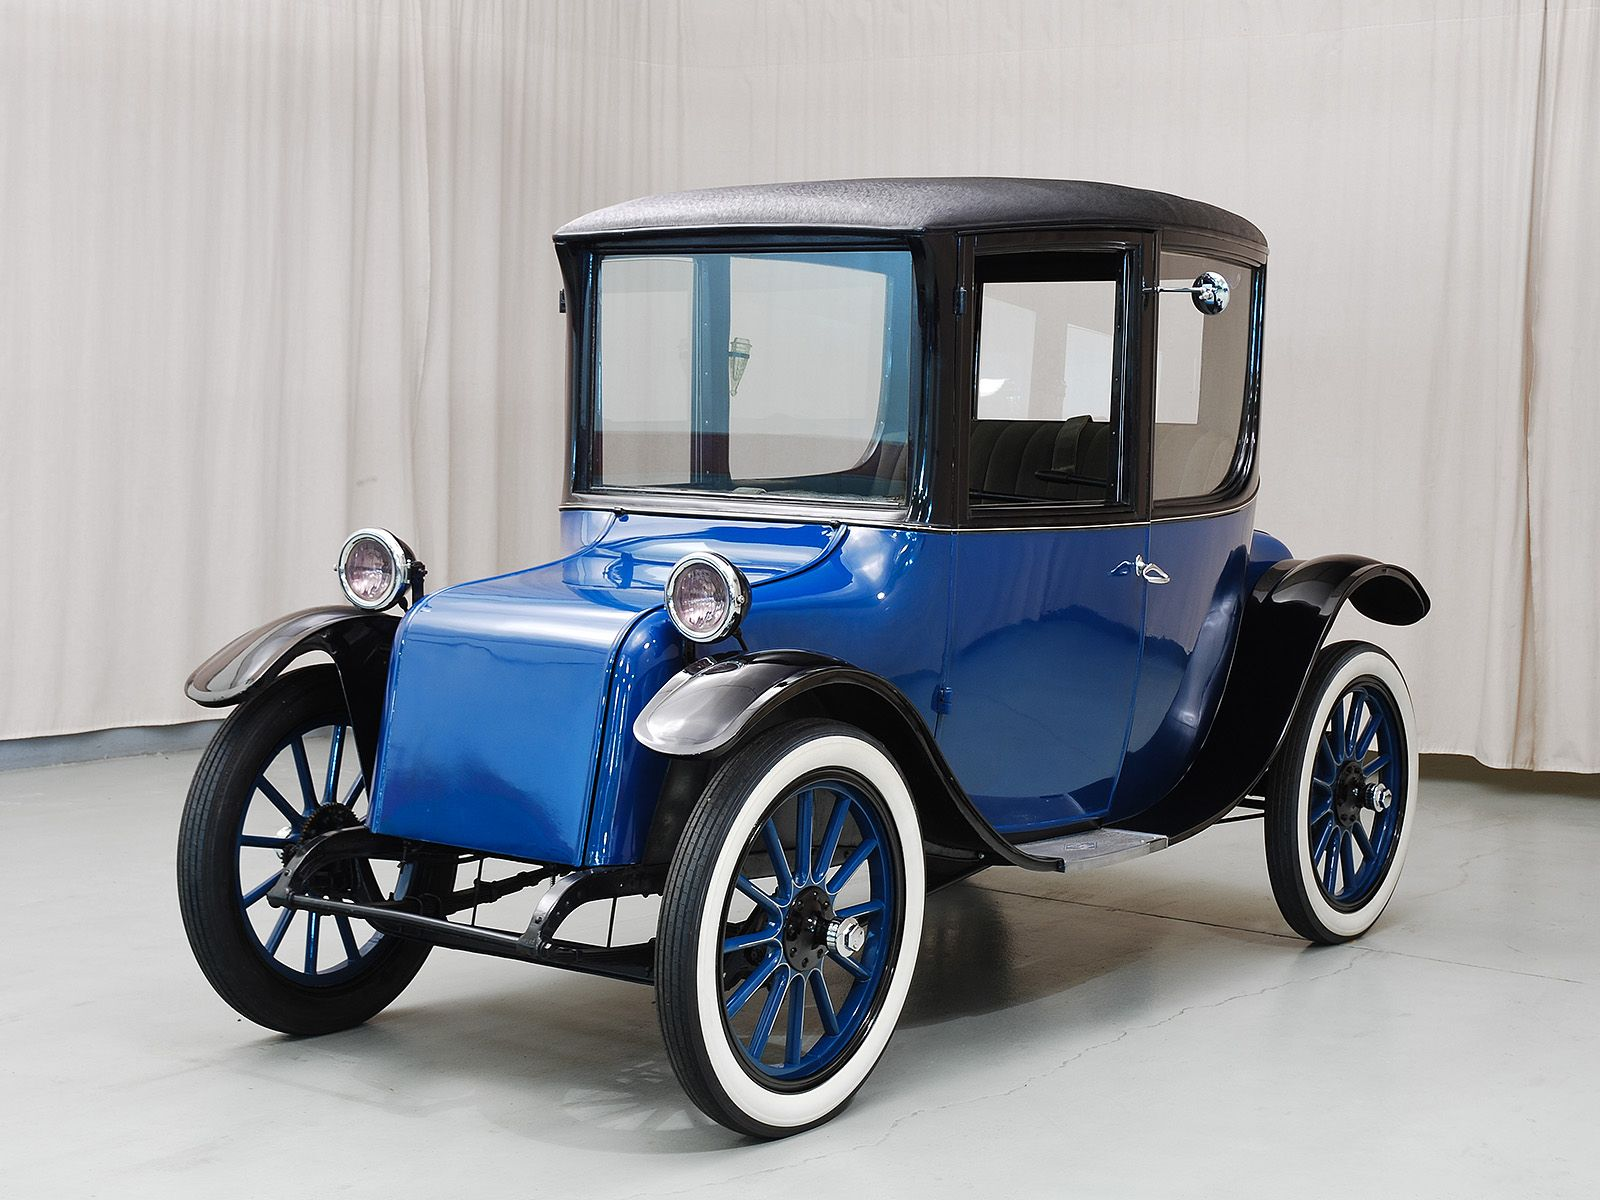 1916 Milburn Electric Coupe Electric Cars Electric Car Classic Cars